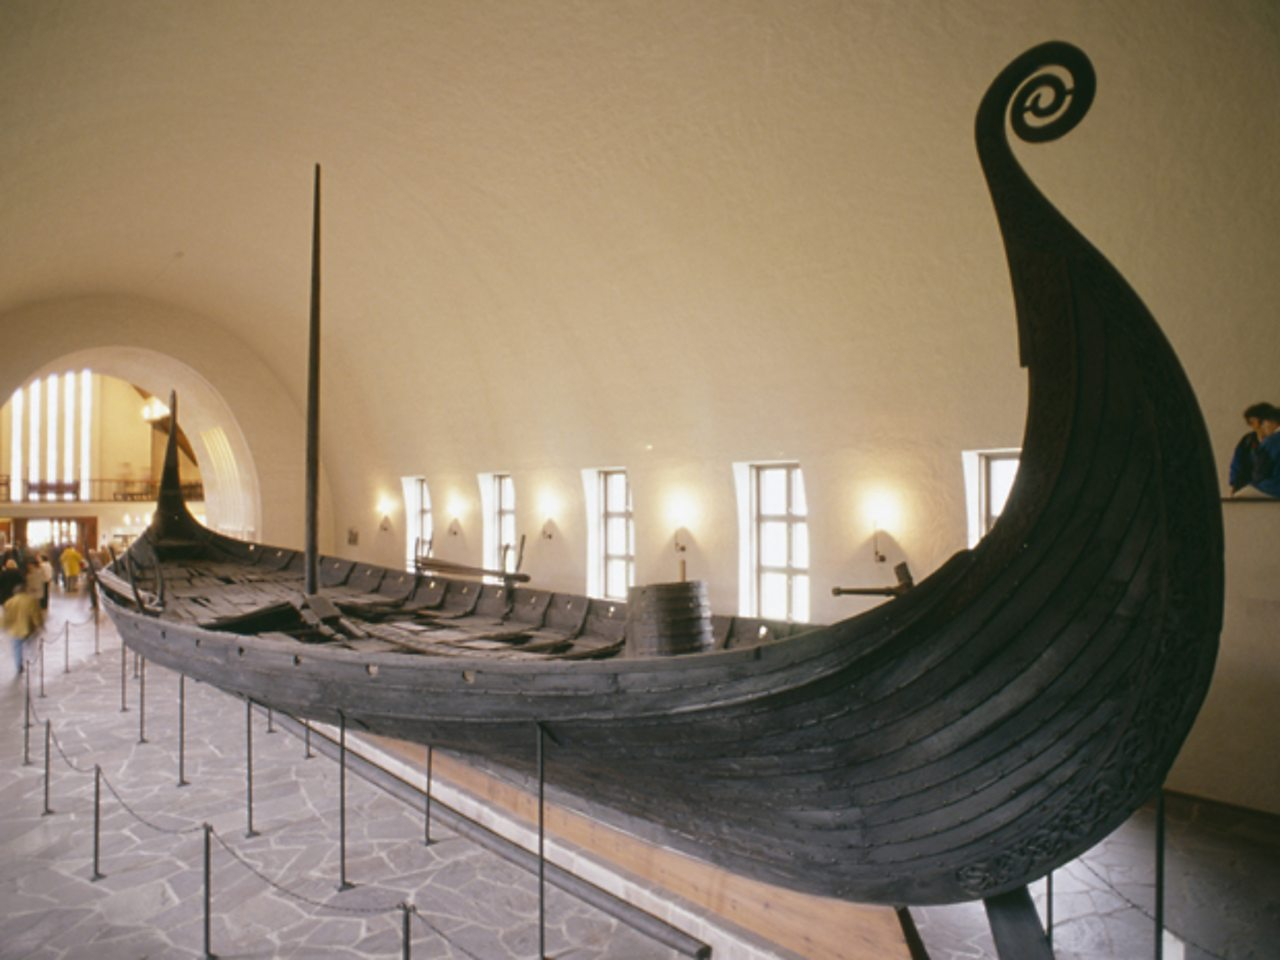 The Oseberg longship in the Vikingskiphuset, Oslo.